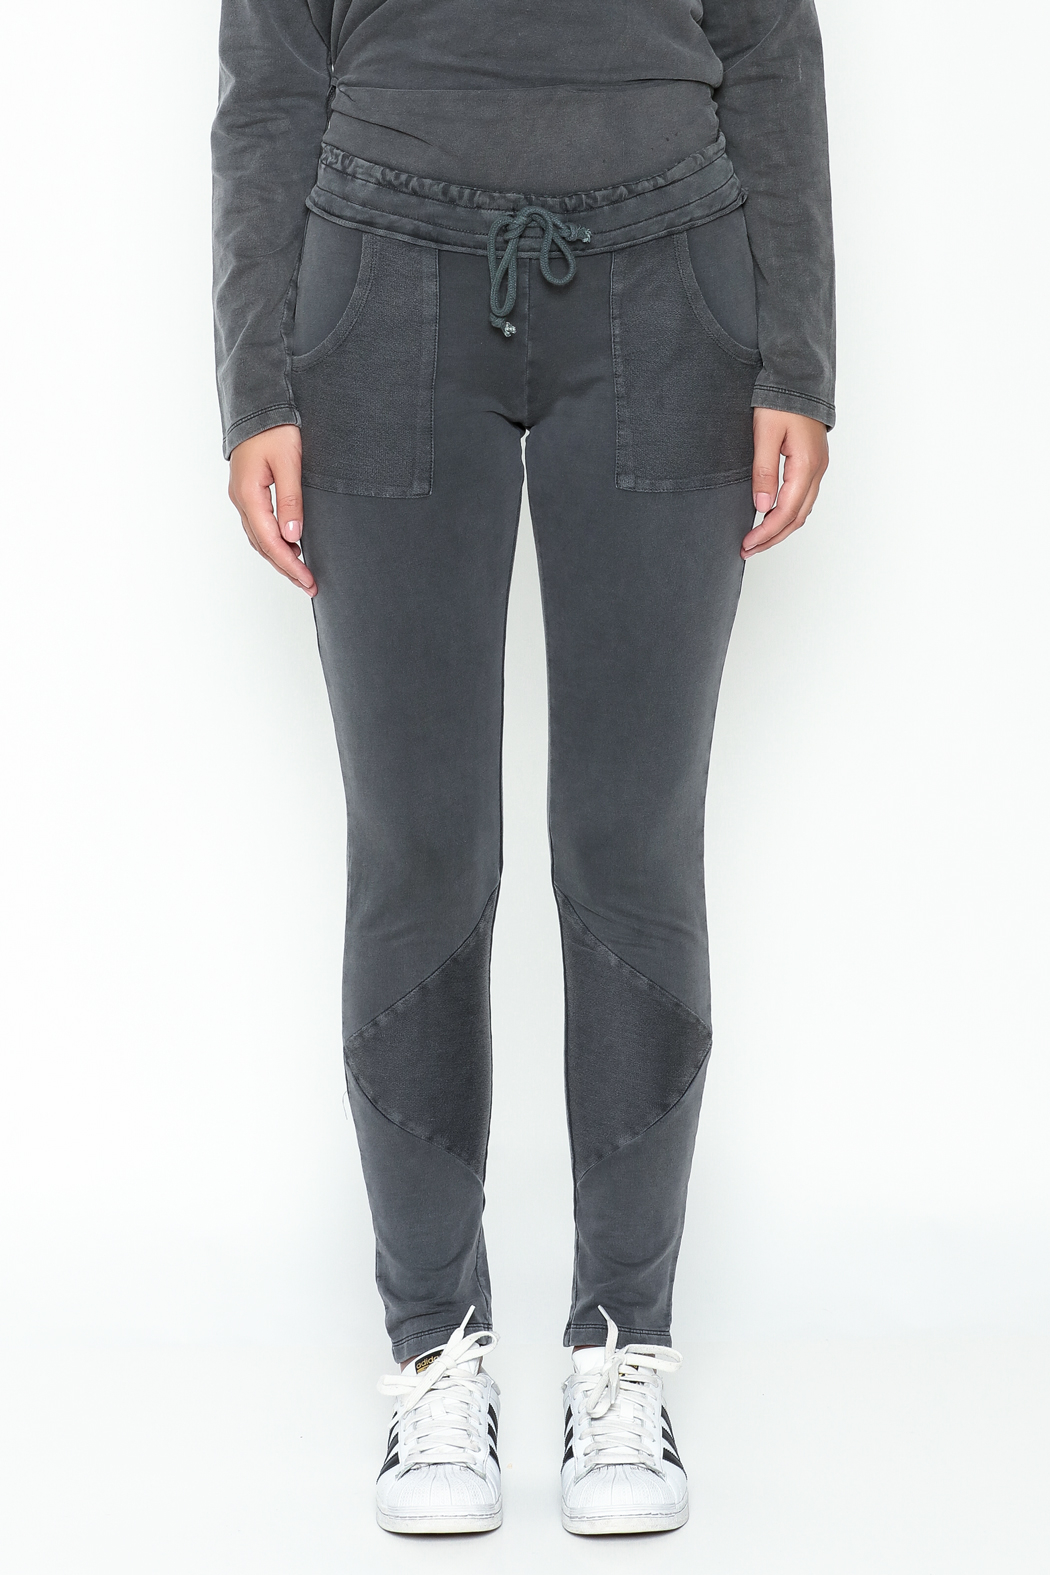 Mustard Seed Inside Patch Pants - Main Image